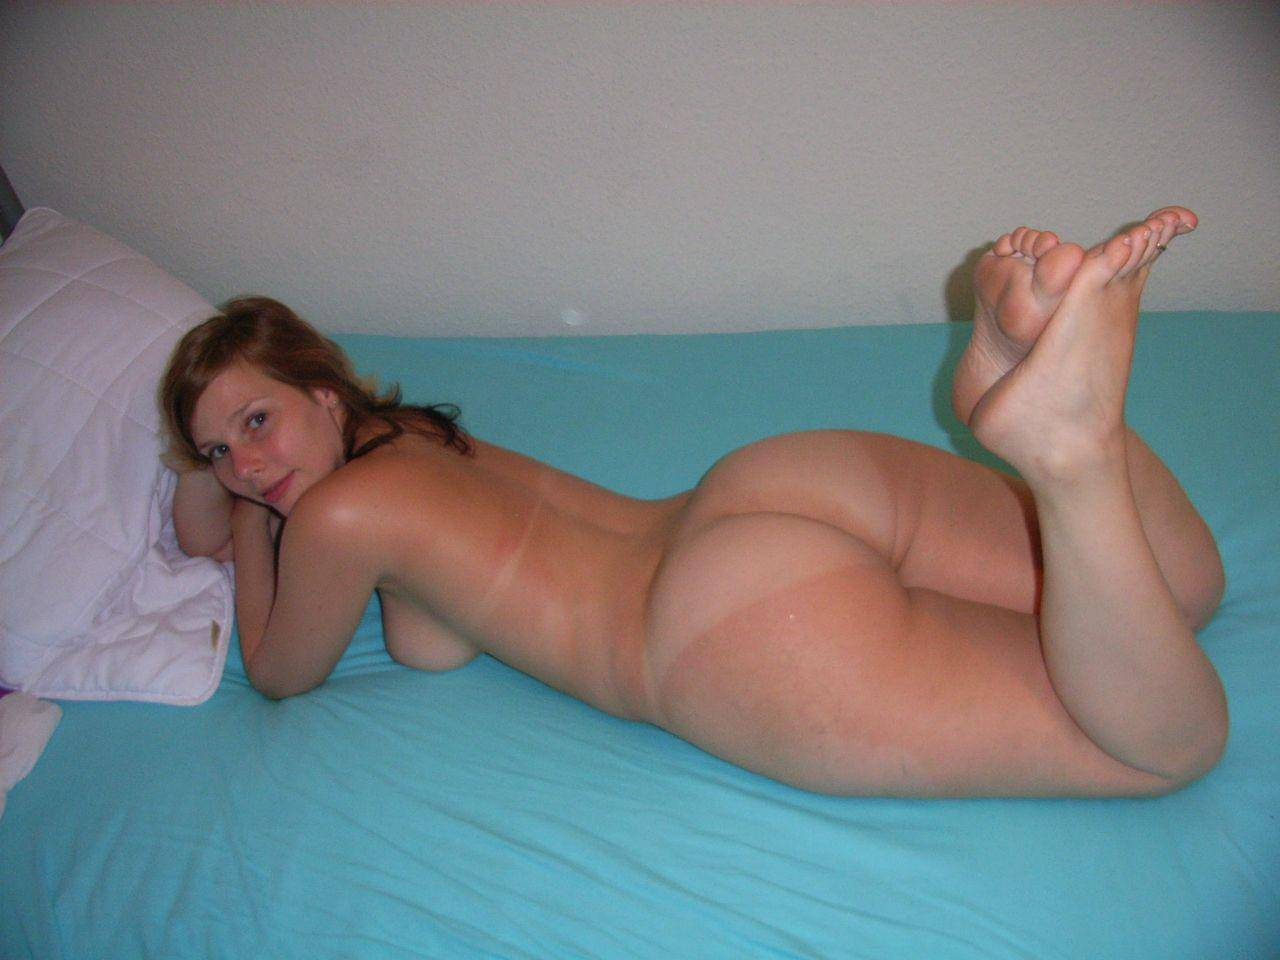 Cute chubby girl big ass